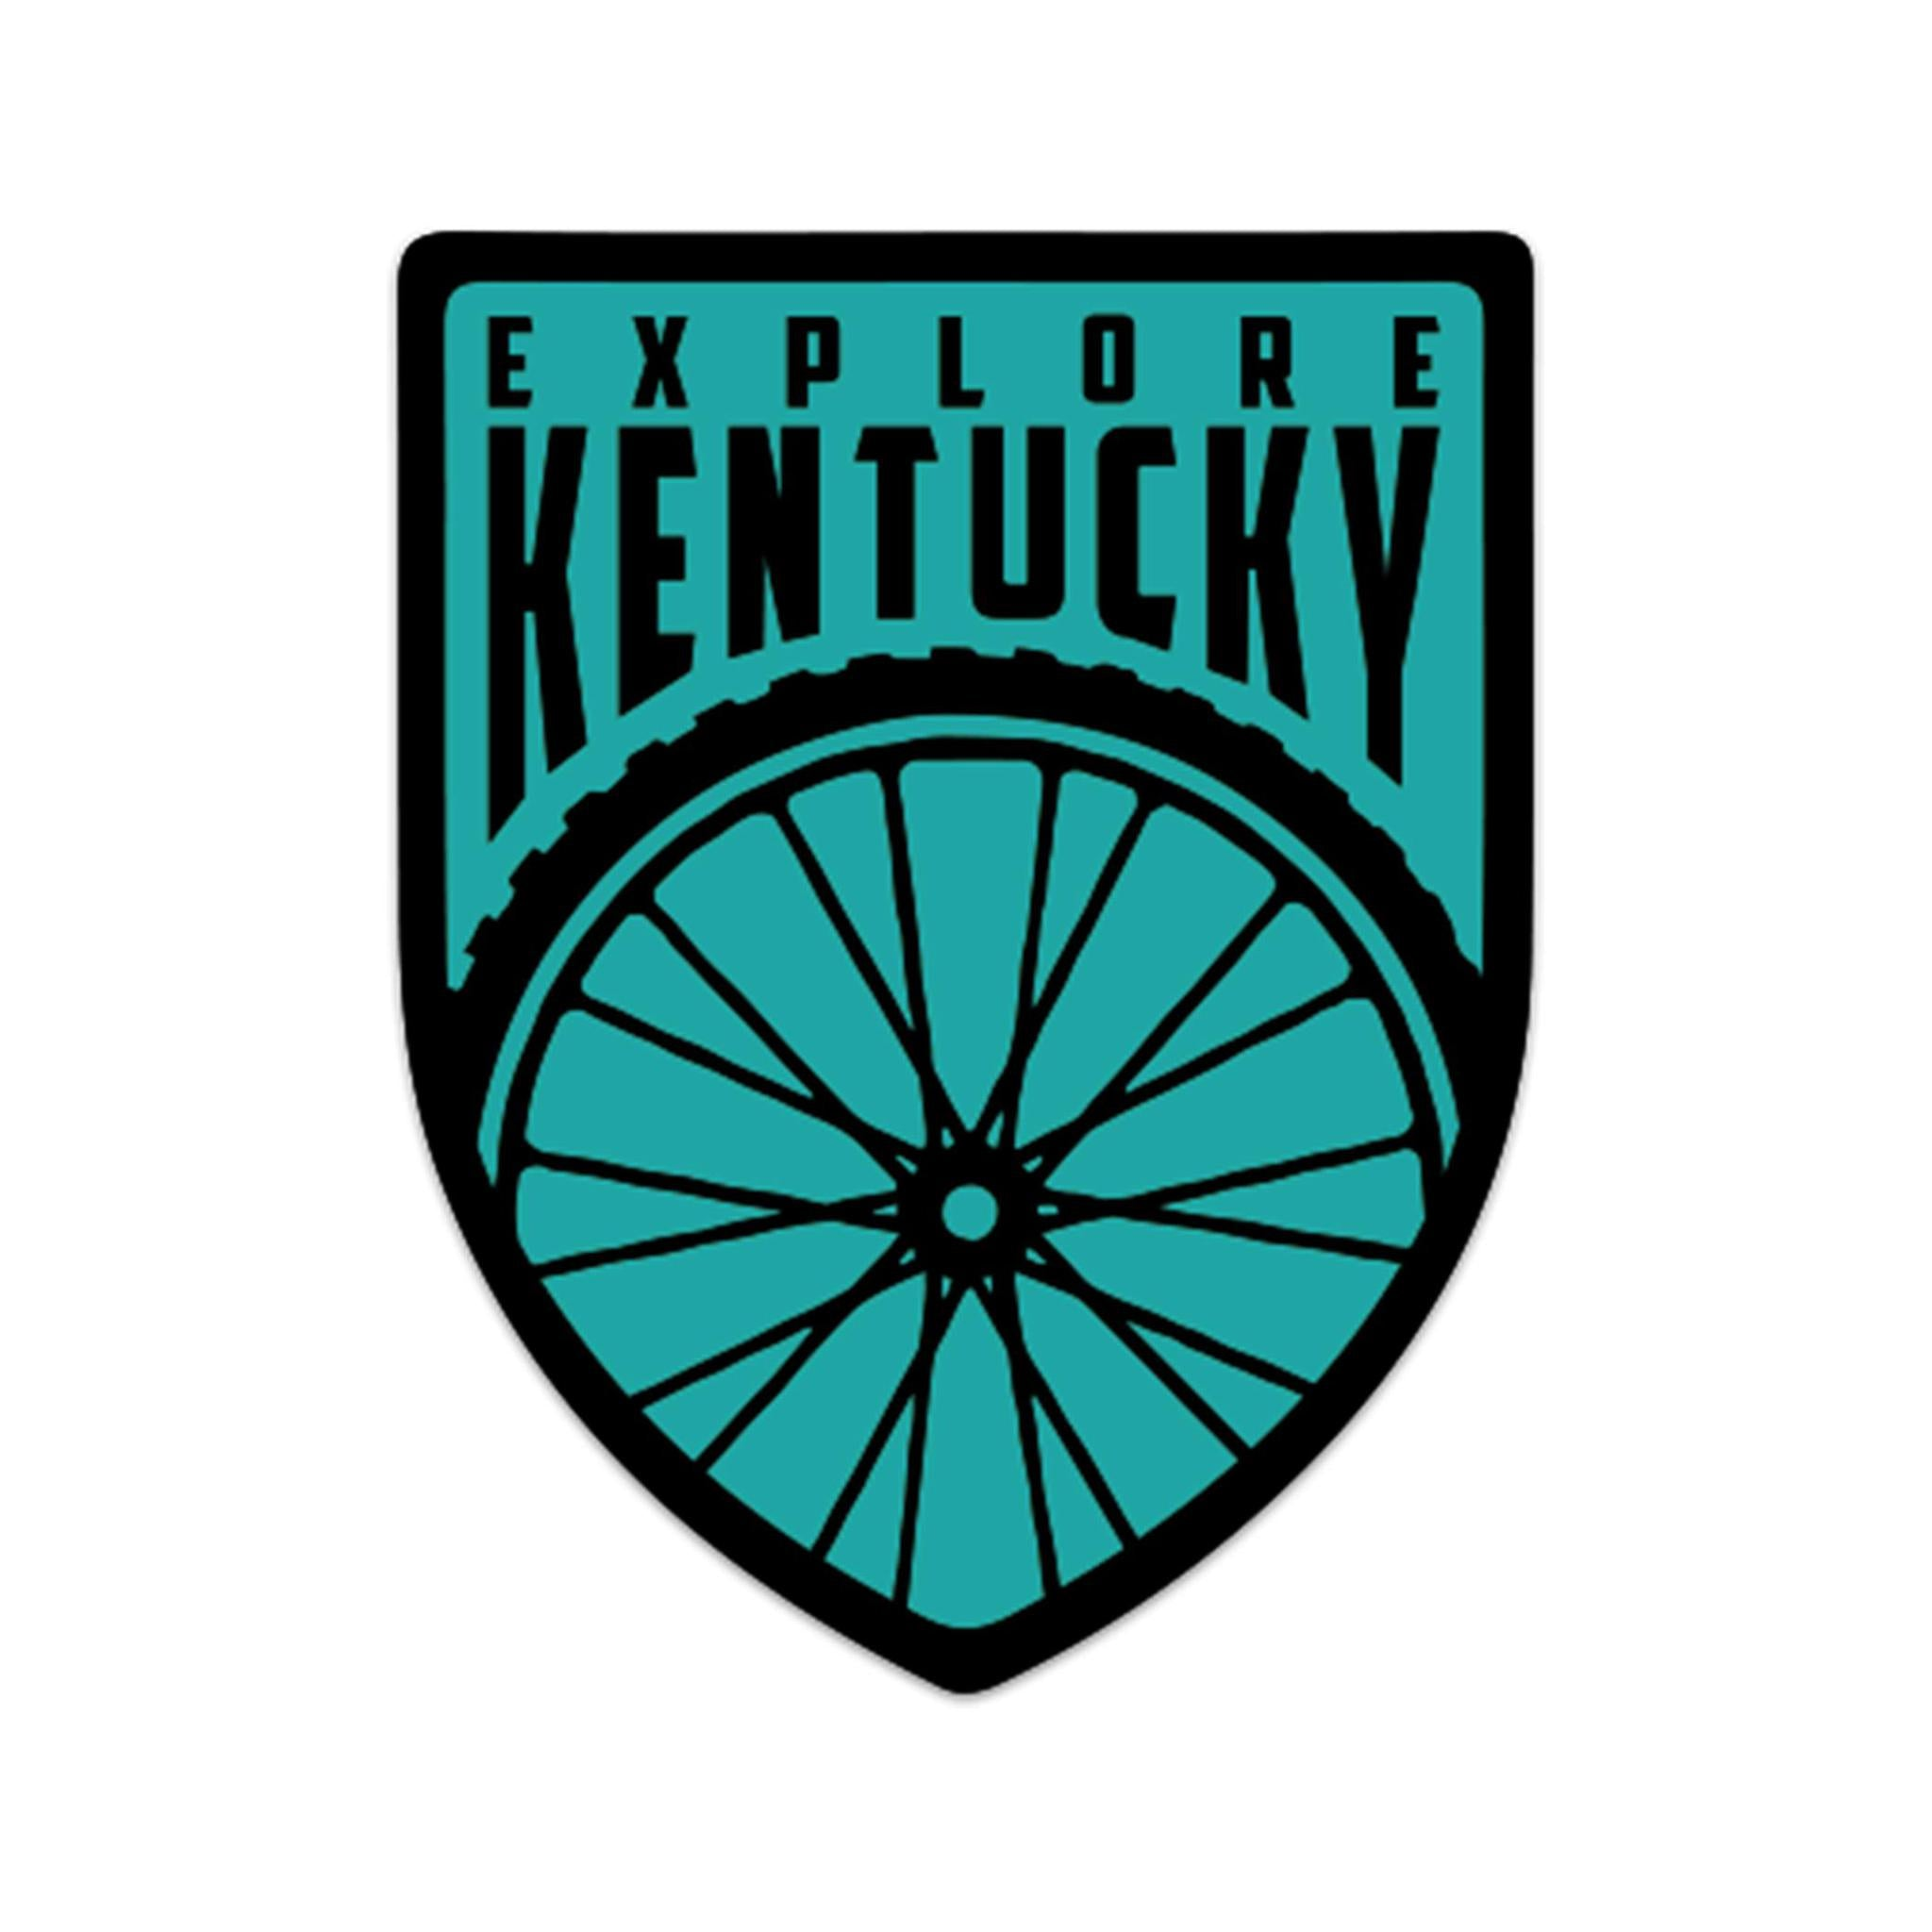 Explore Kentucky's Cycling Sticker (Mint Green)-Stickers-KY for KY Store